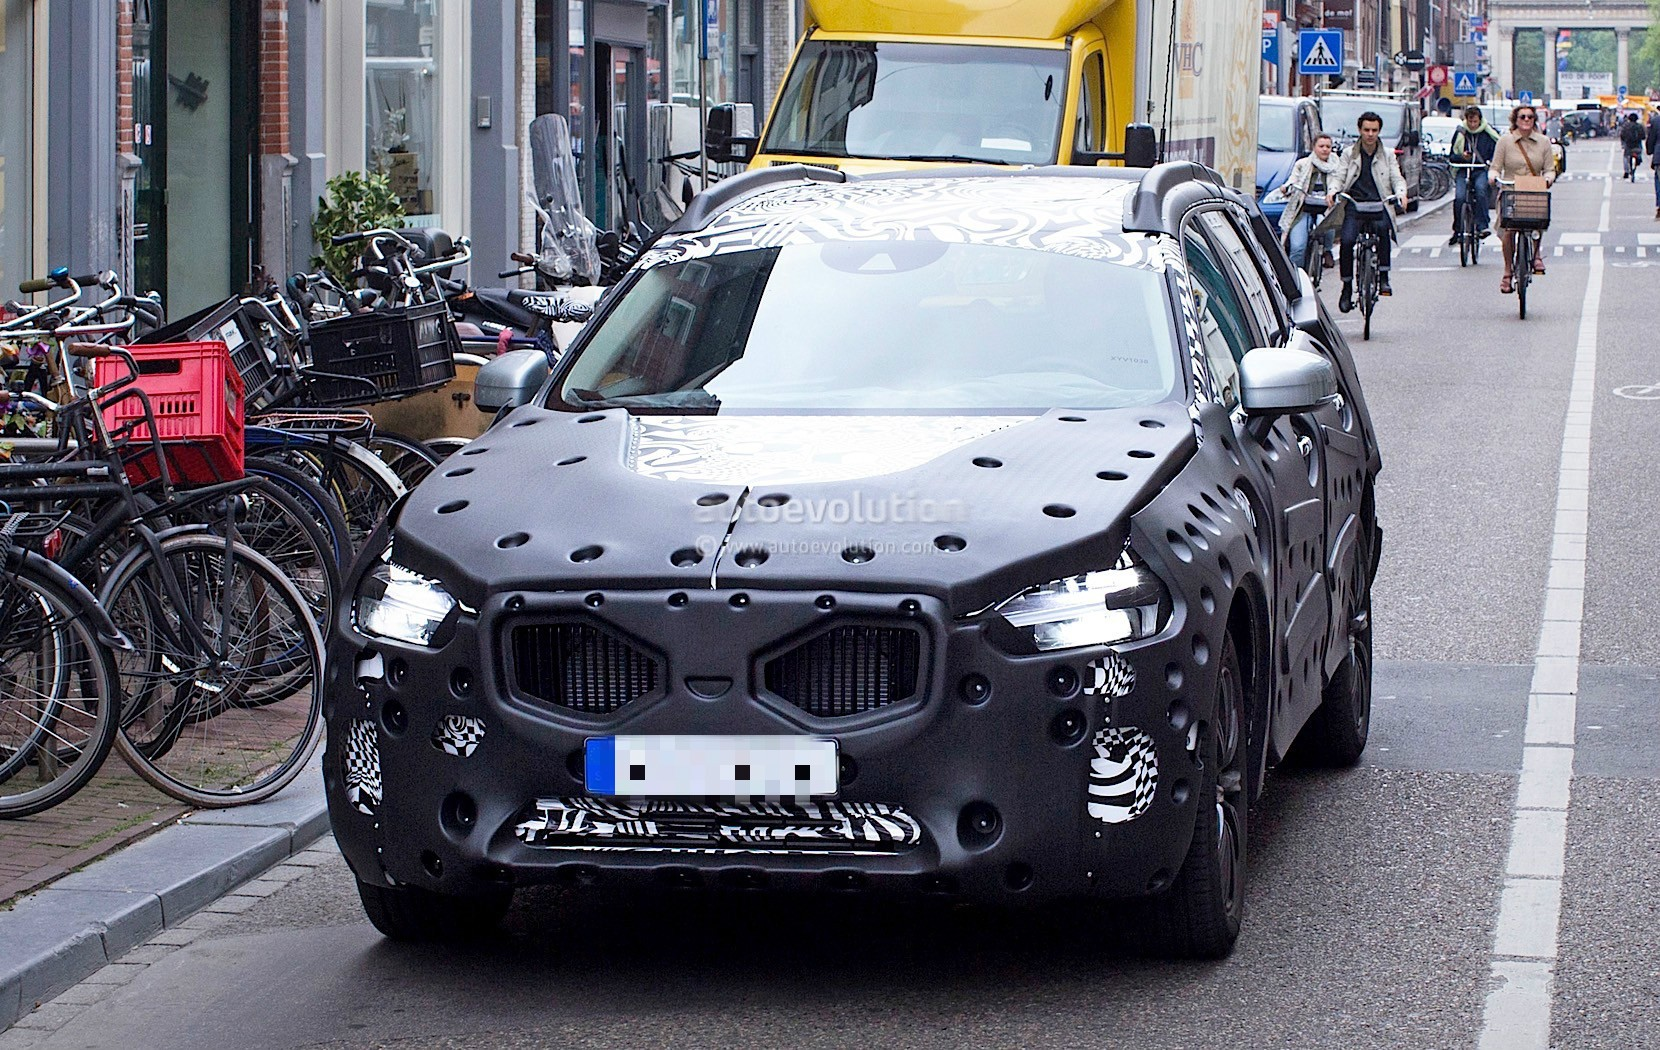 2018-volvo-xc60-spied-for-the-first-time-in-amsterdam_4